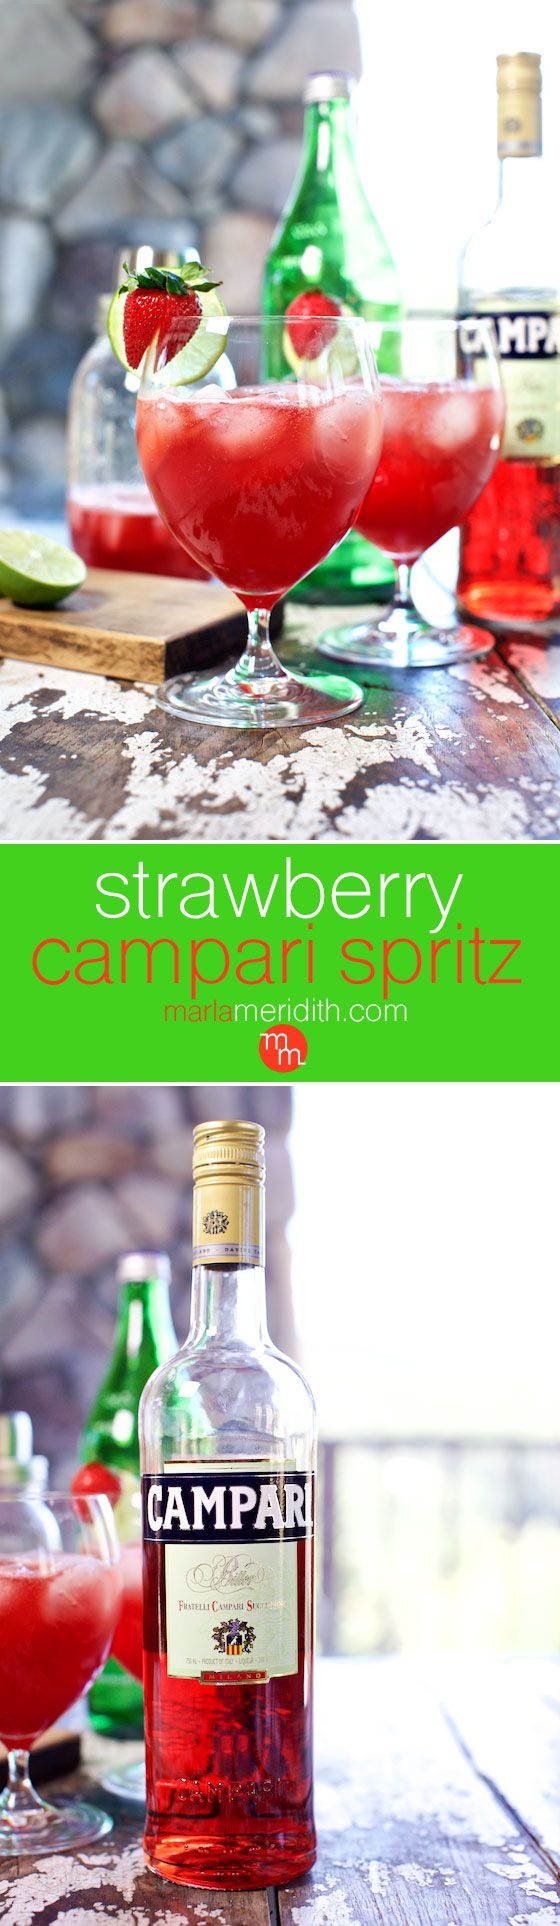 Refreshing cocktails, My trip and Strawberries on Pinterest